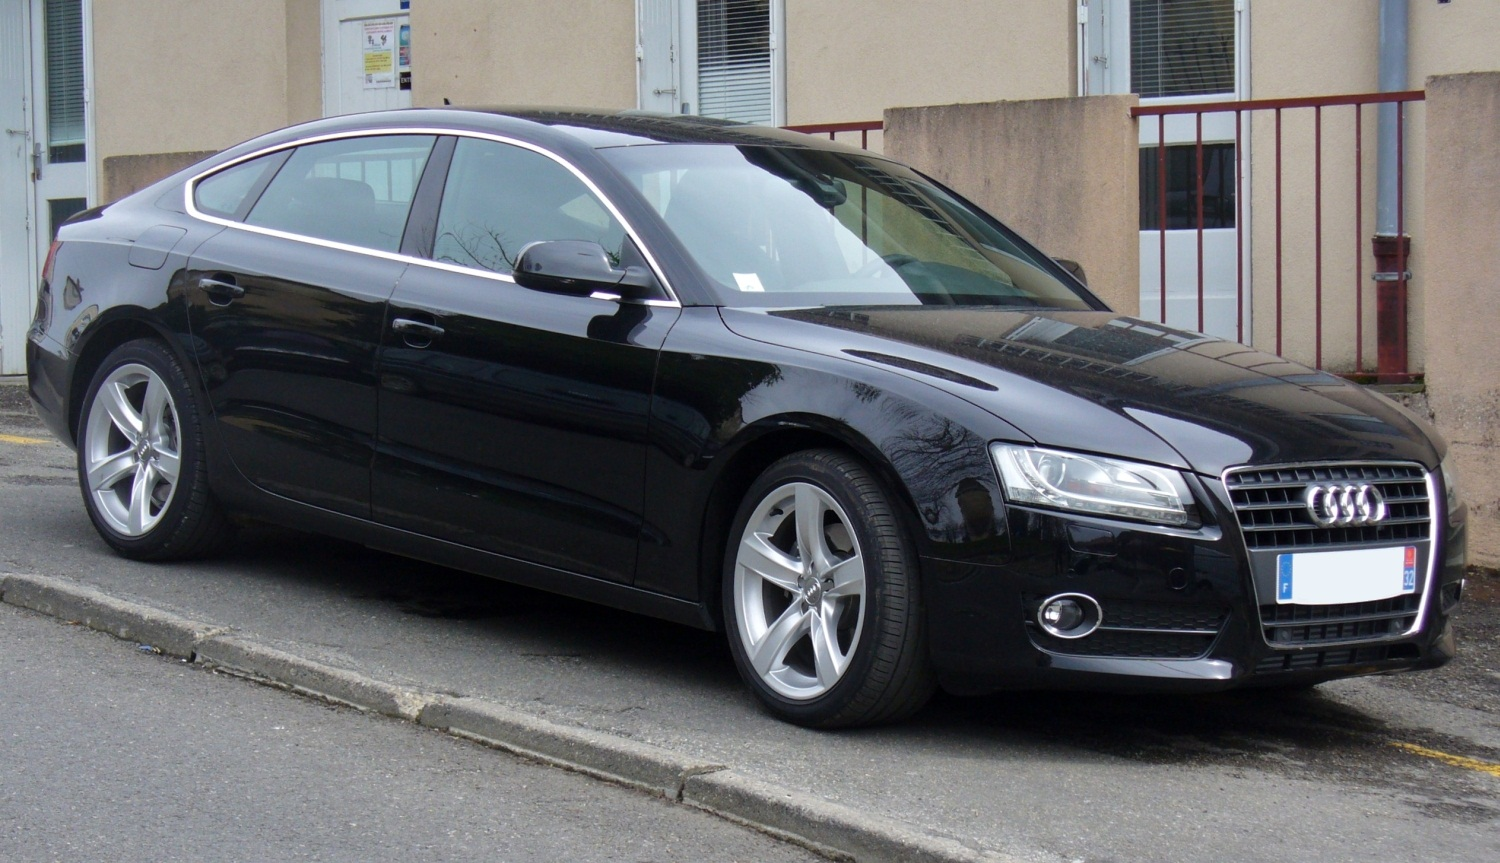 Audi Contract Hire A3 A4 A5 A6 A8 Q7TT Convertible